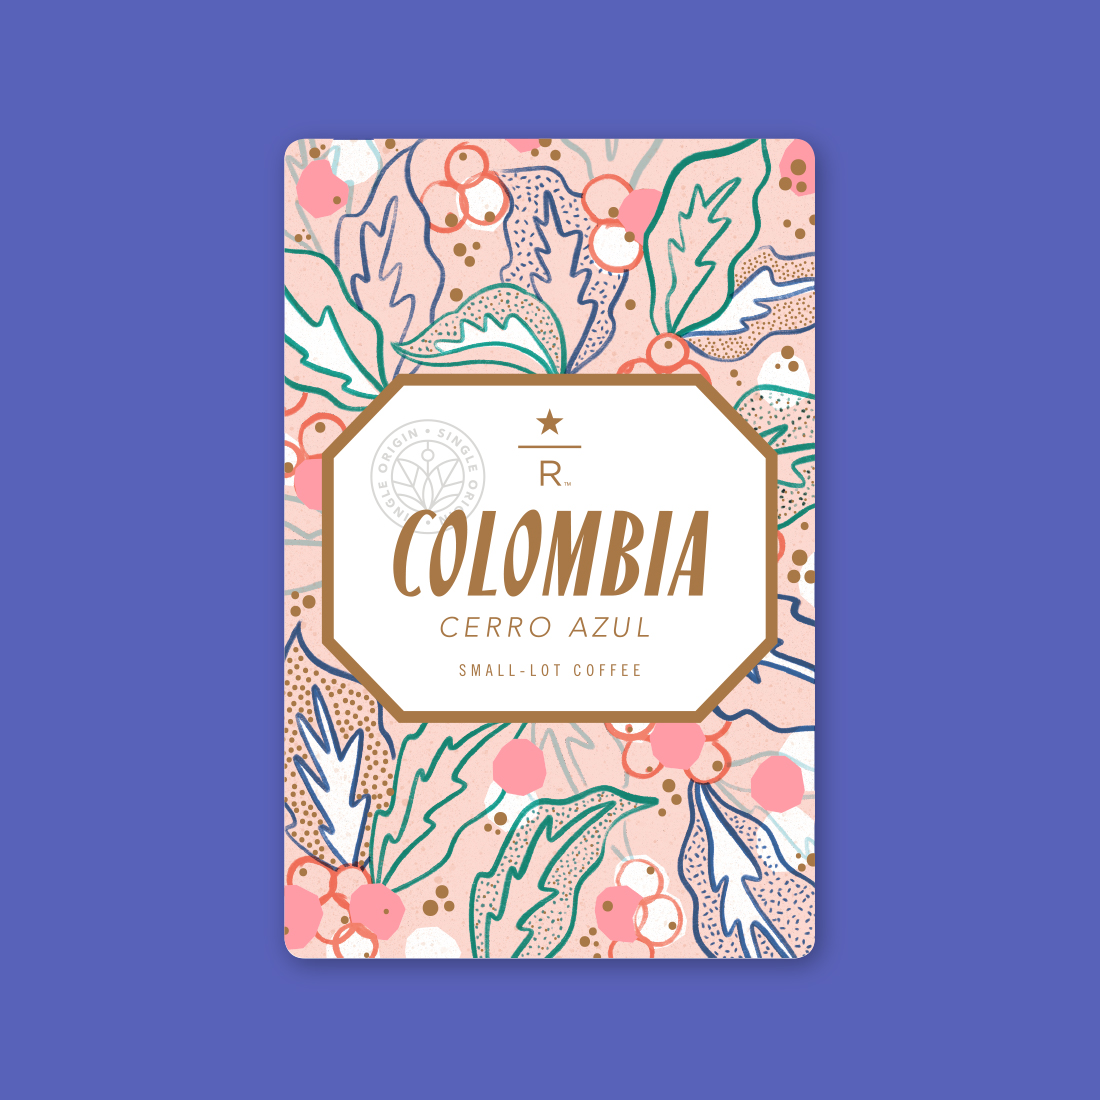 Coffee card illustration for COLOMBIA CERRO AZUL